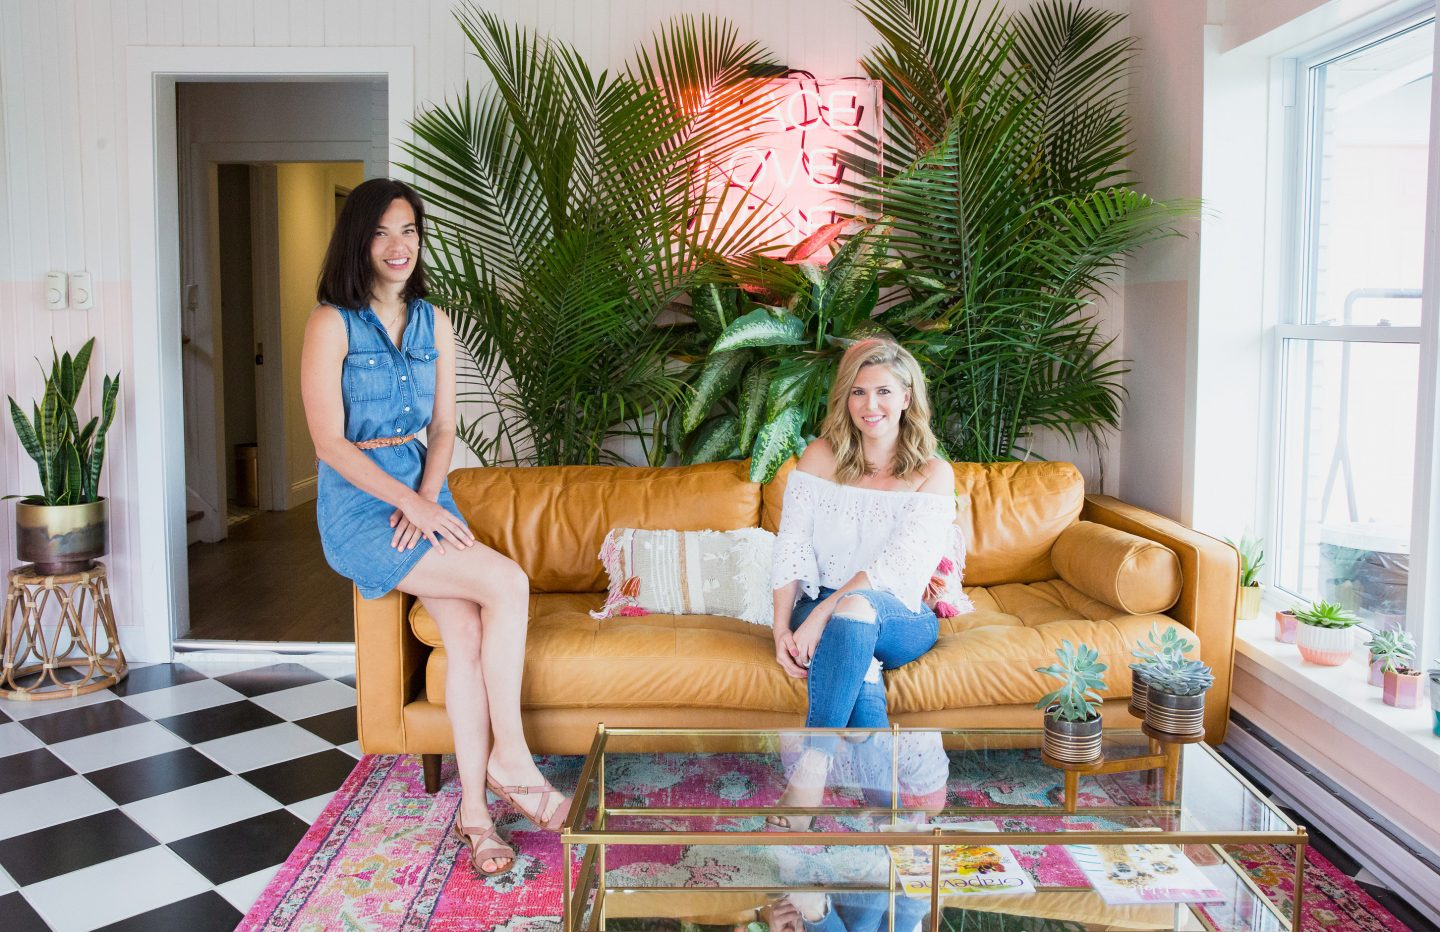 6 Questions with April Brown and Sarah Sklash